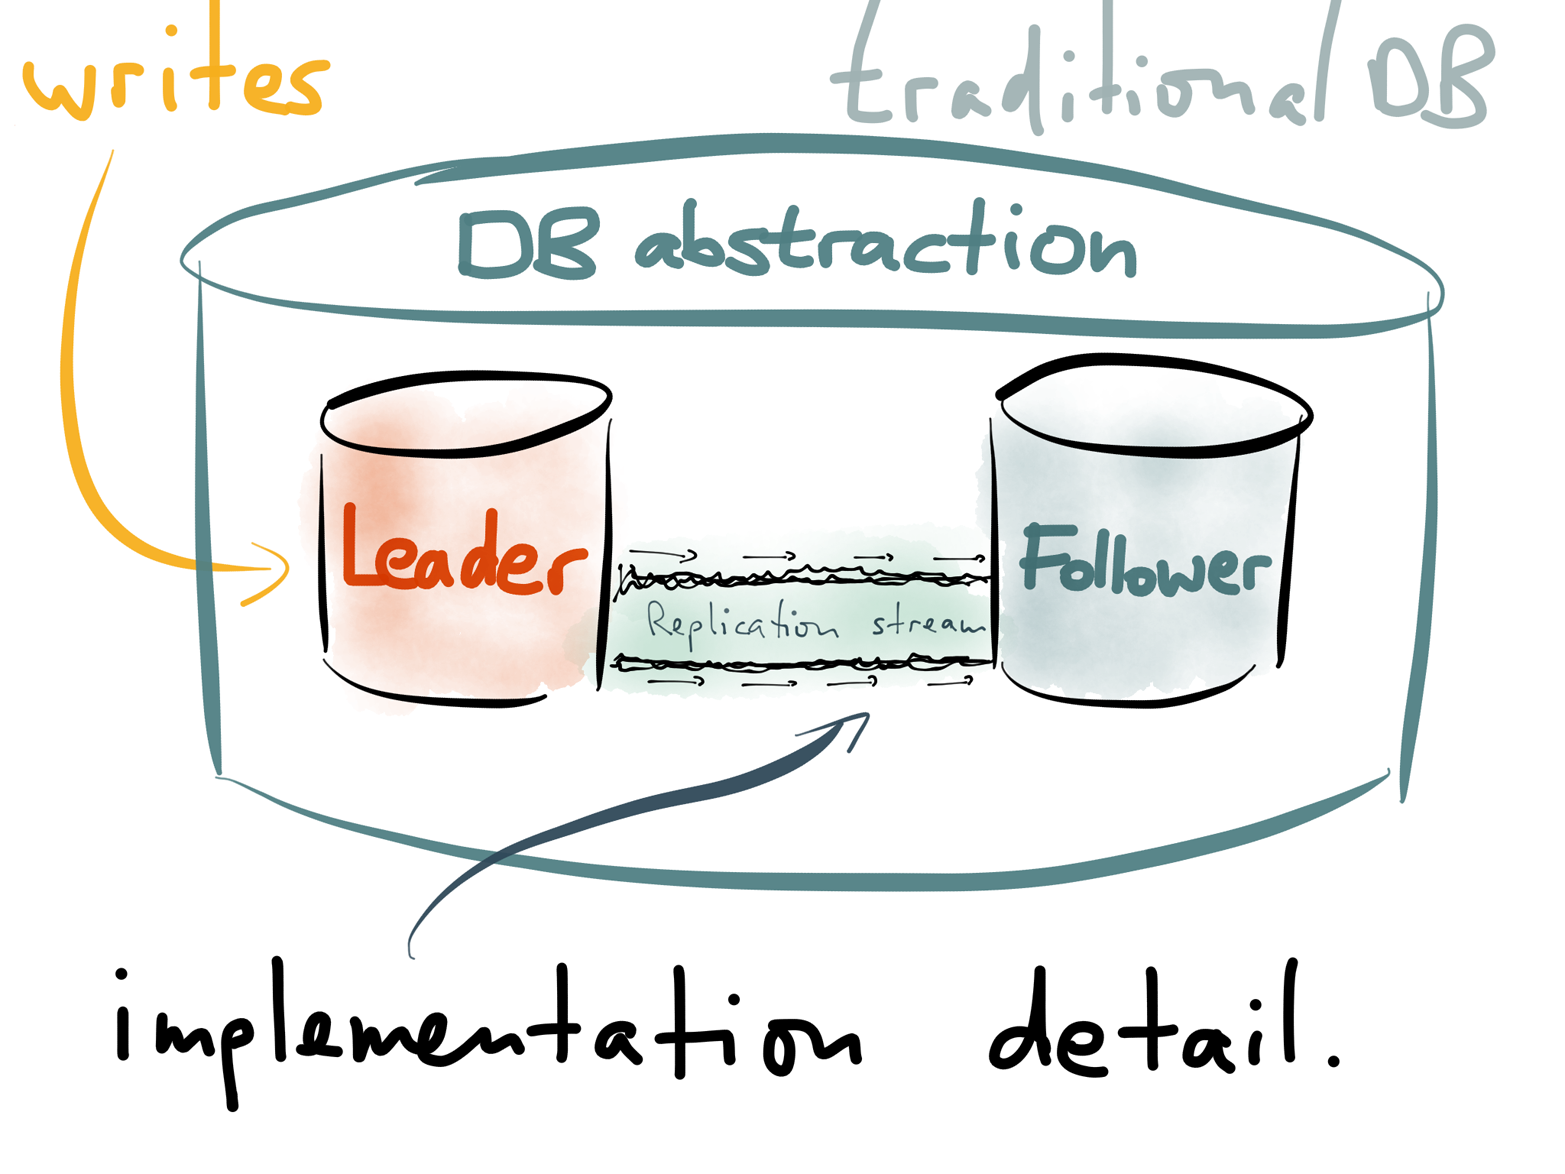 In traditional database architecture, the replication log is considered an implementation detail, not part of the database's public API.